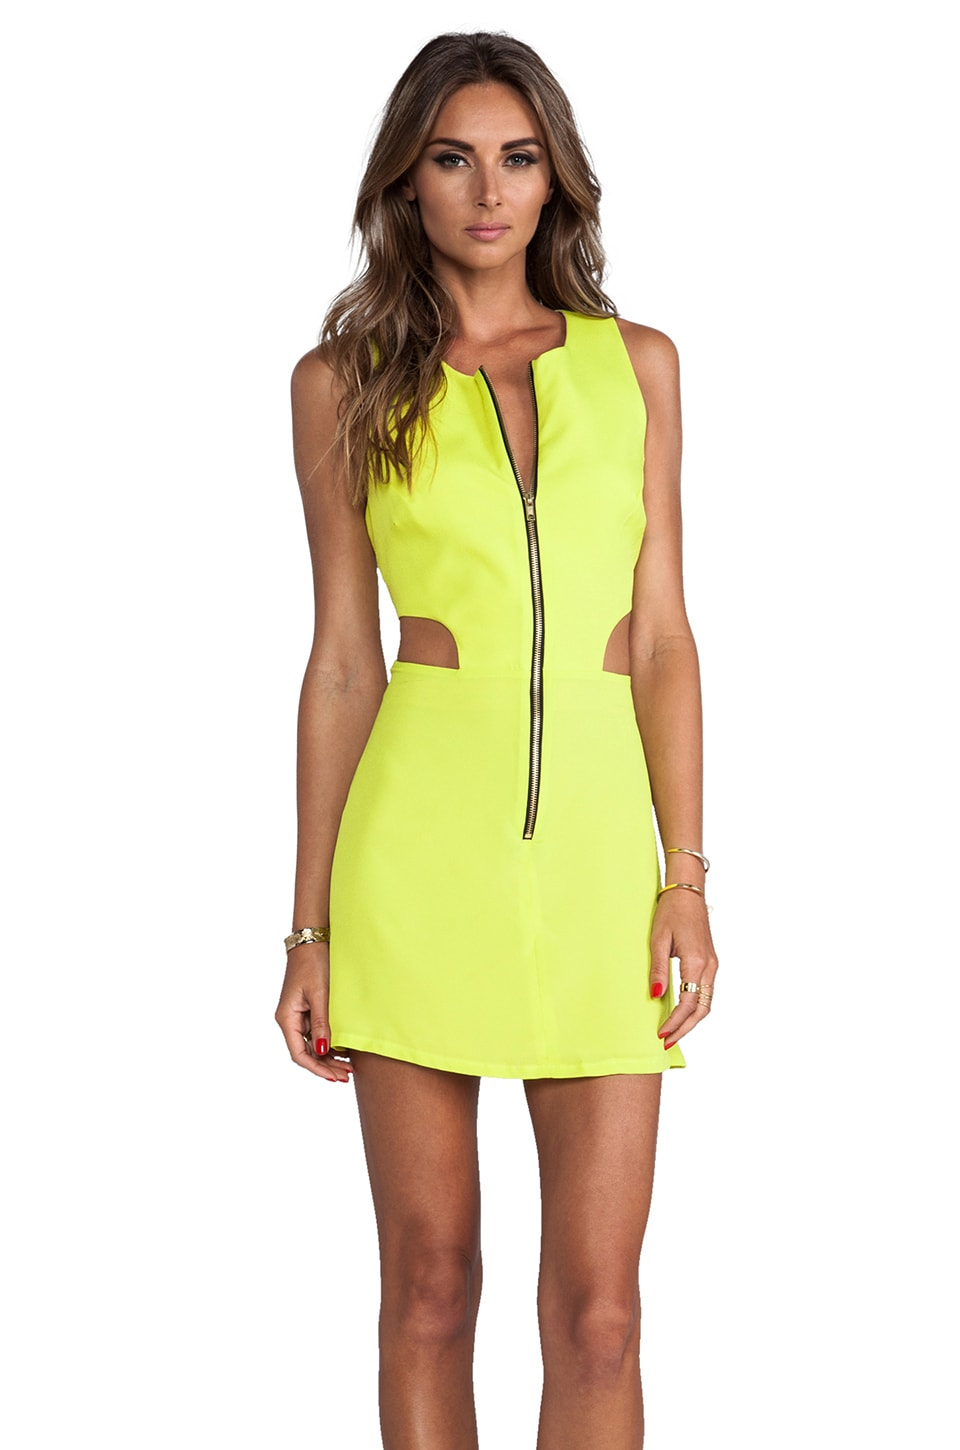 Naven Retro Cutout Dress in Chartreuse